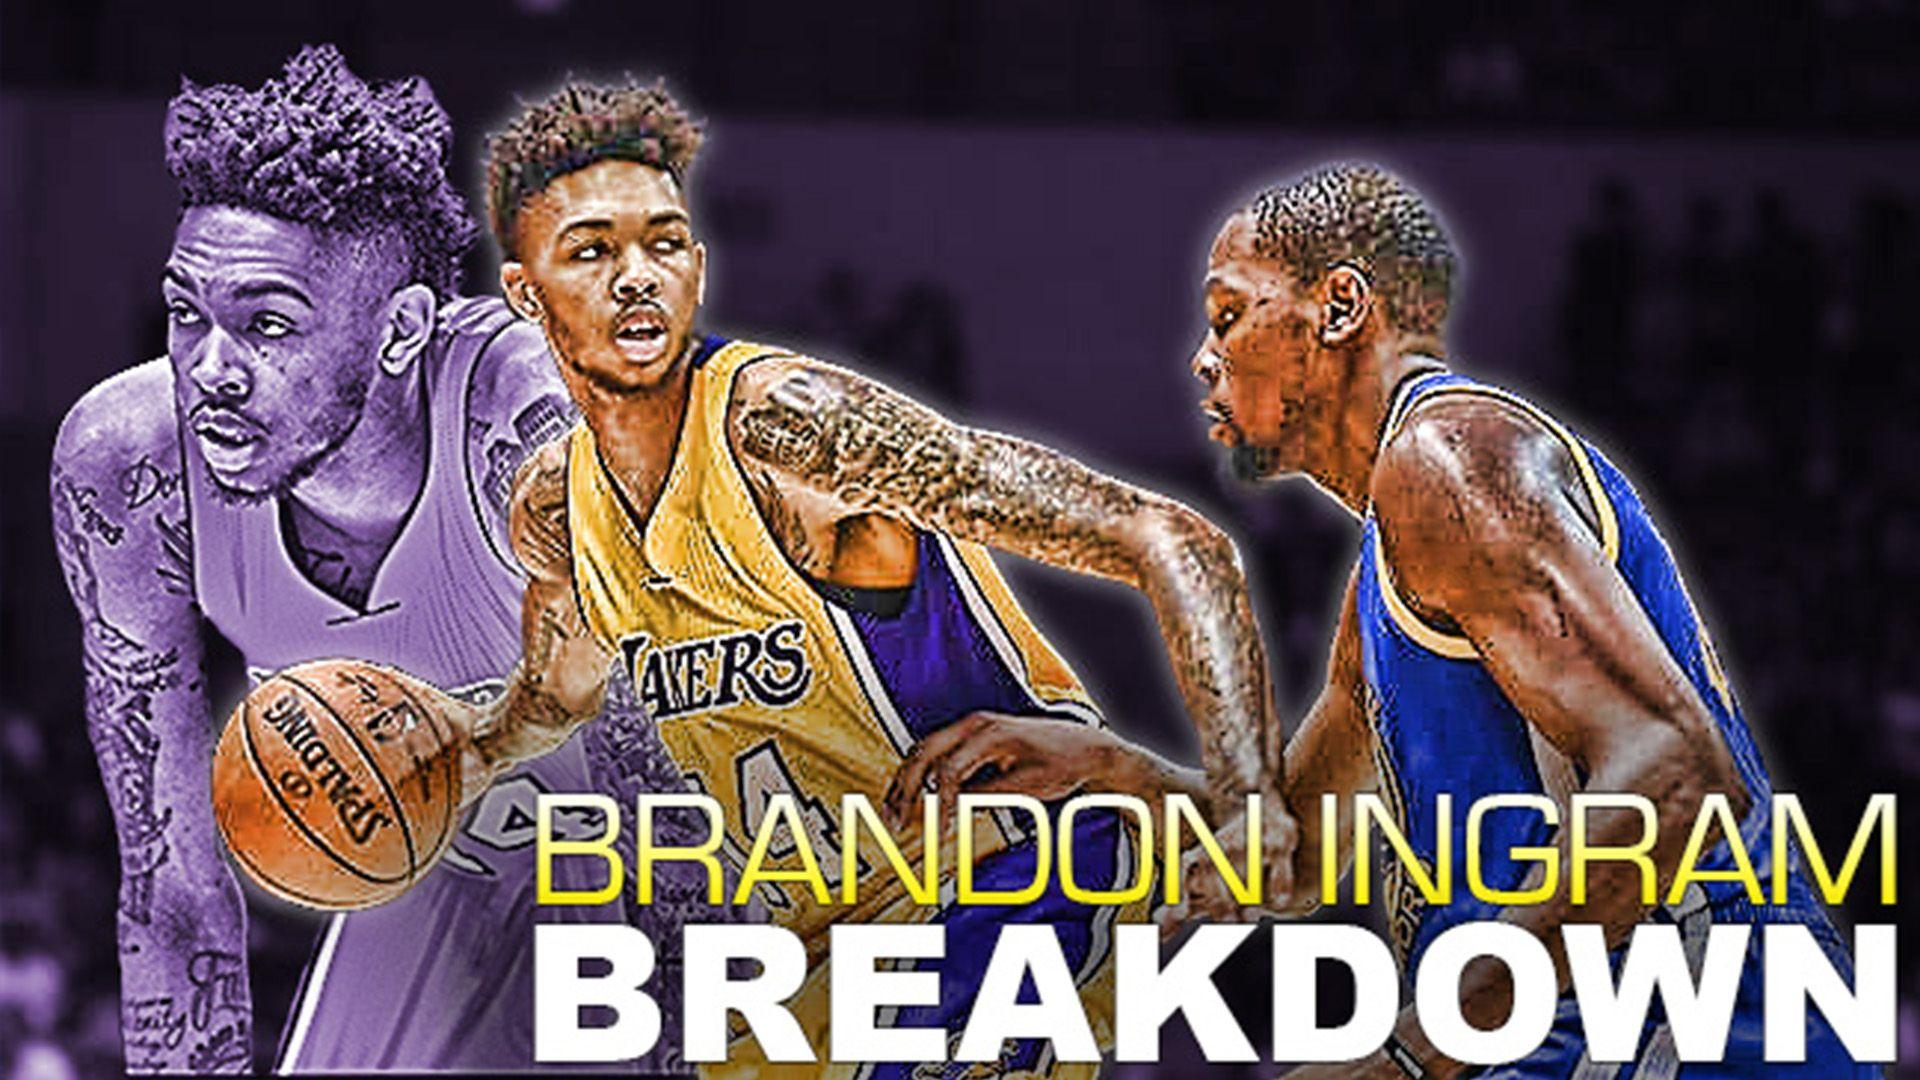 Lakers Brandon Ingram Breakdown! Full Rookie Offensive Breakdown